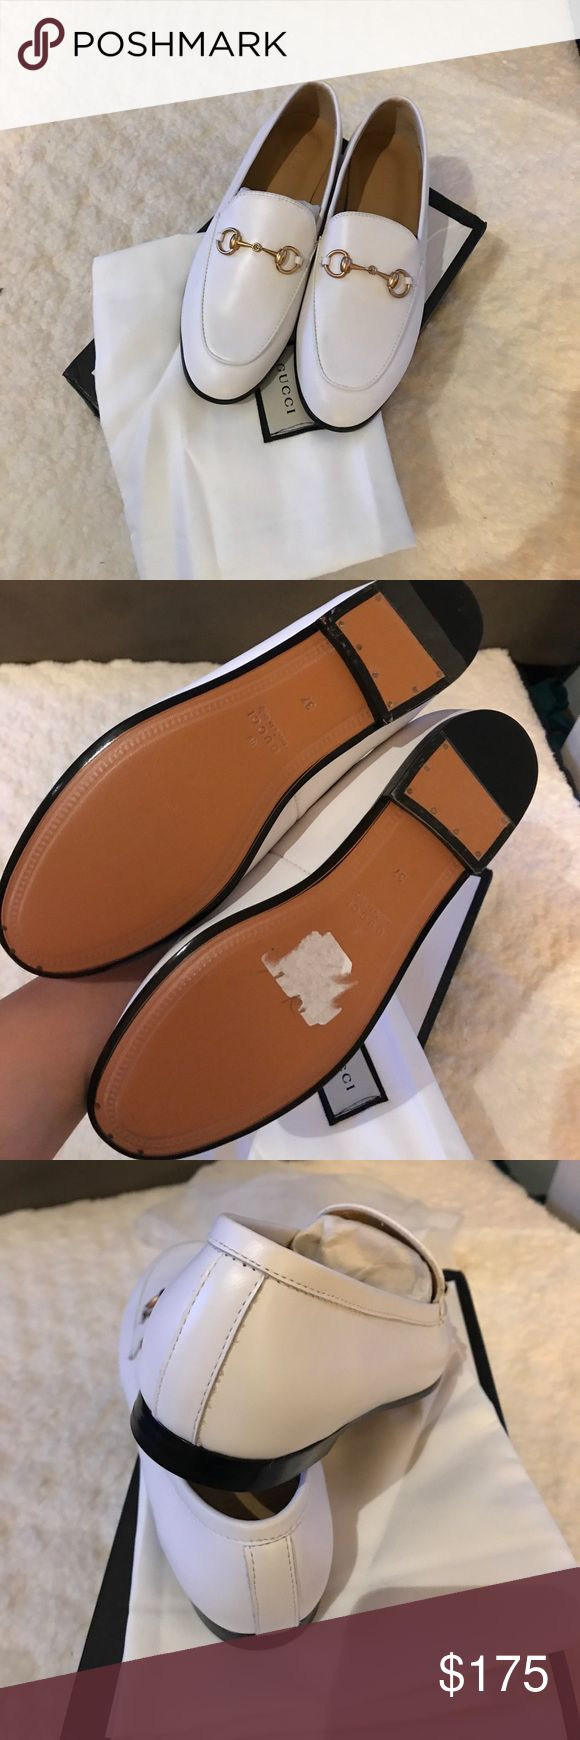 Brand New White Gucci Loafers Never been worn (real) leather white Gucci Oxfords. Super high quality!! Price reflects authenticity. Box and dust bag are included!!! Fits true to size Gucci Shoes Flats & Loafers